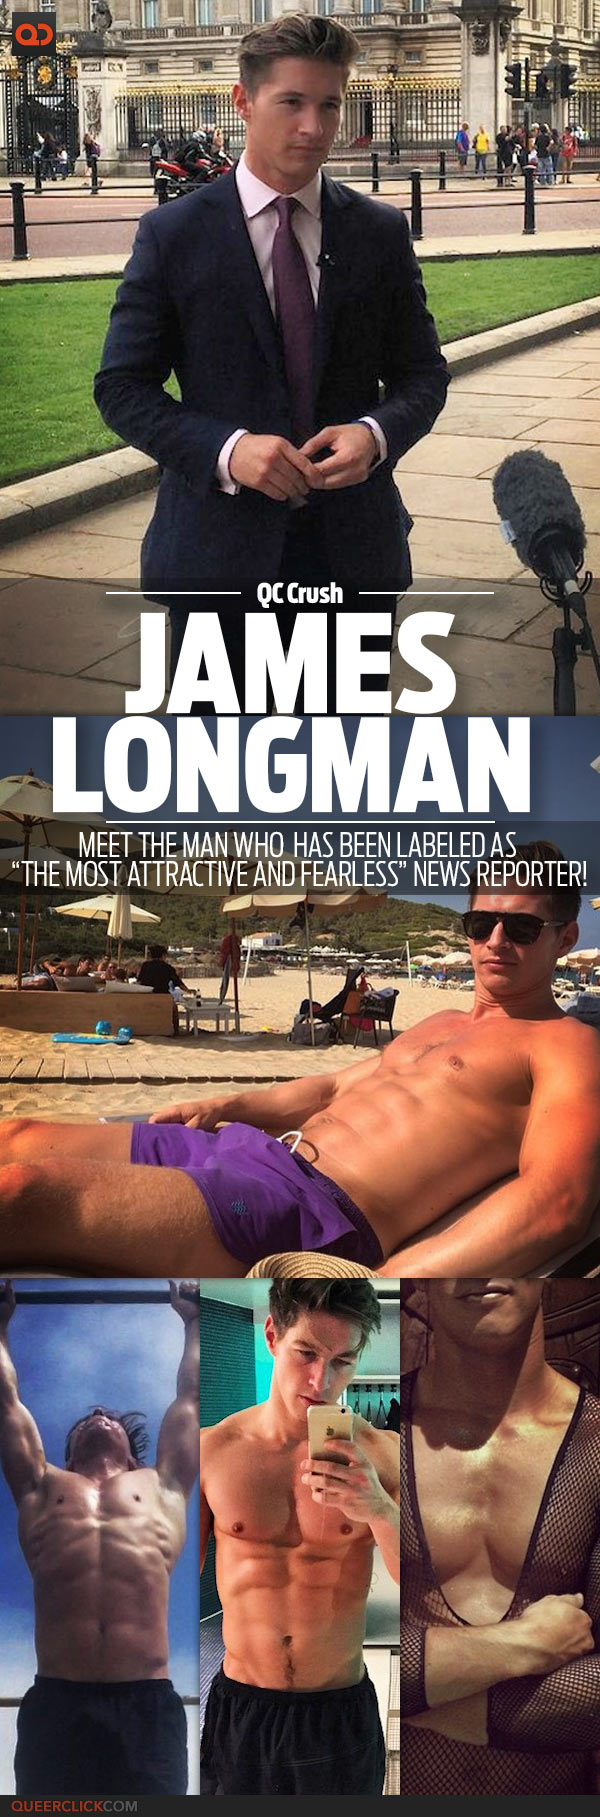 "QC Crush: James Longman - Meet The Man Who Has Been Labeled As ""The Most Attractive And Fearless"" News Reporter!"